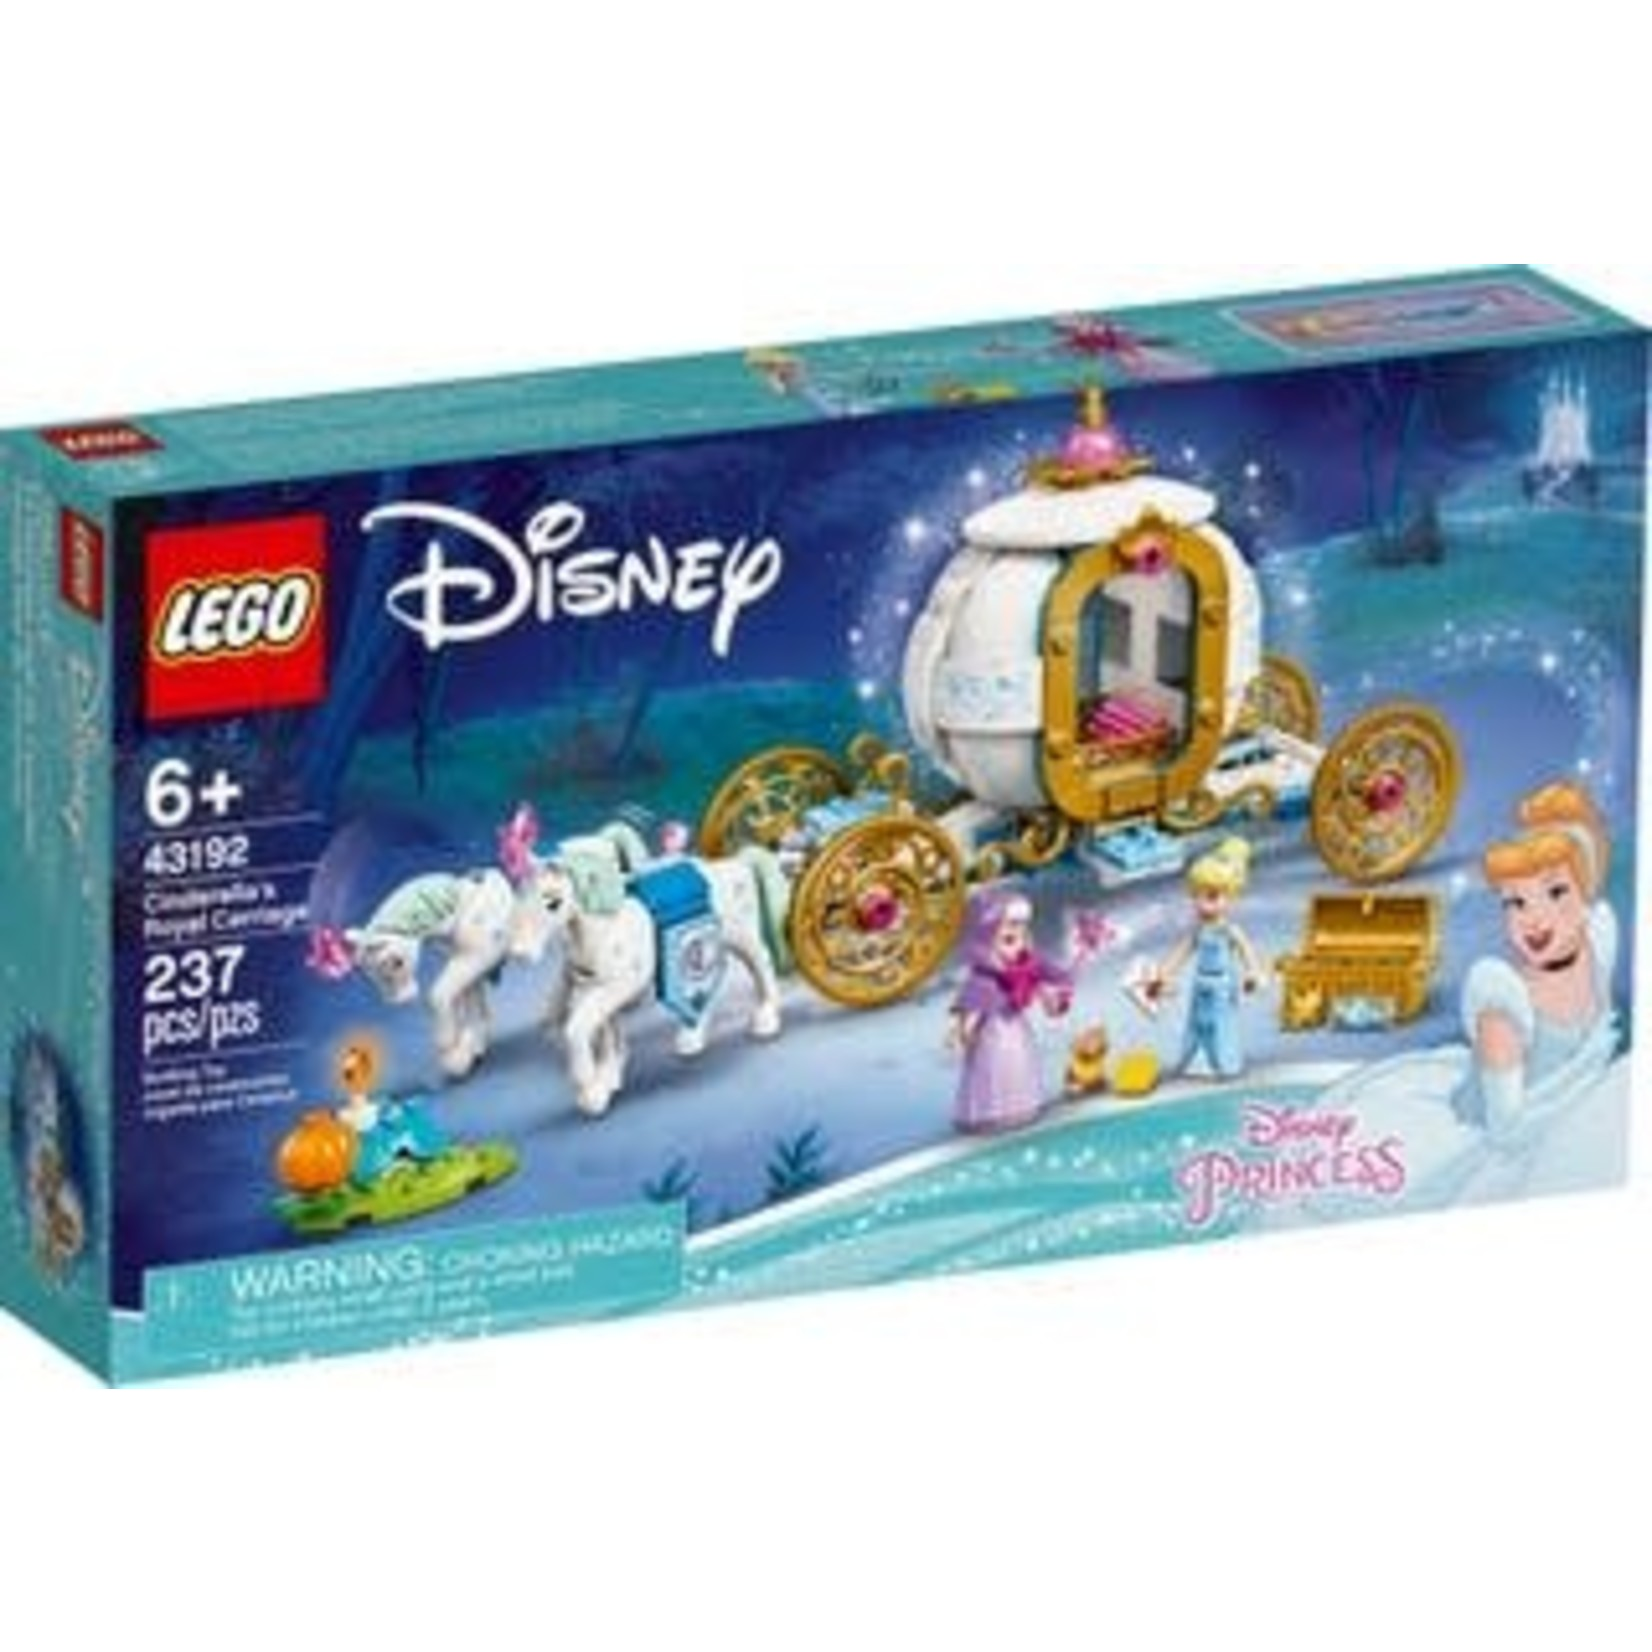 LEGO LEGO Cinderella's Royal Carriage